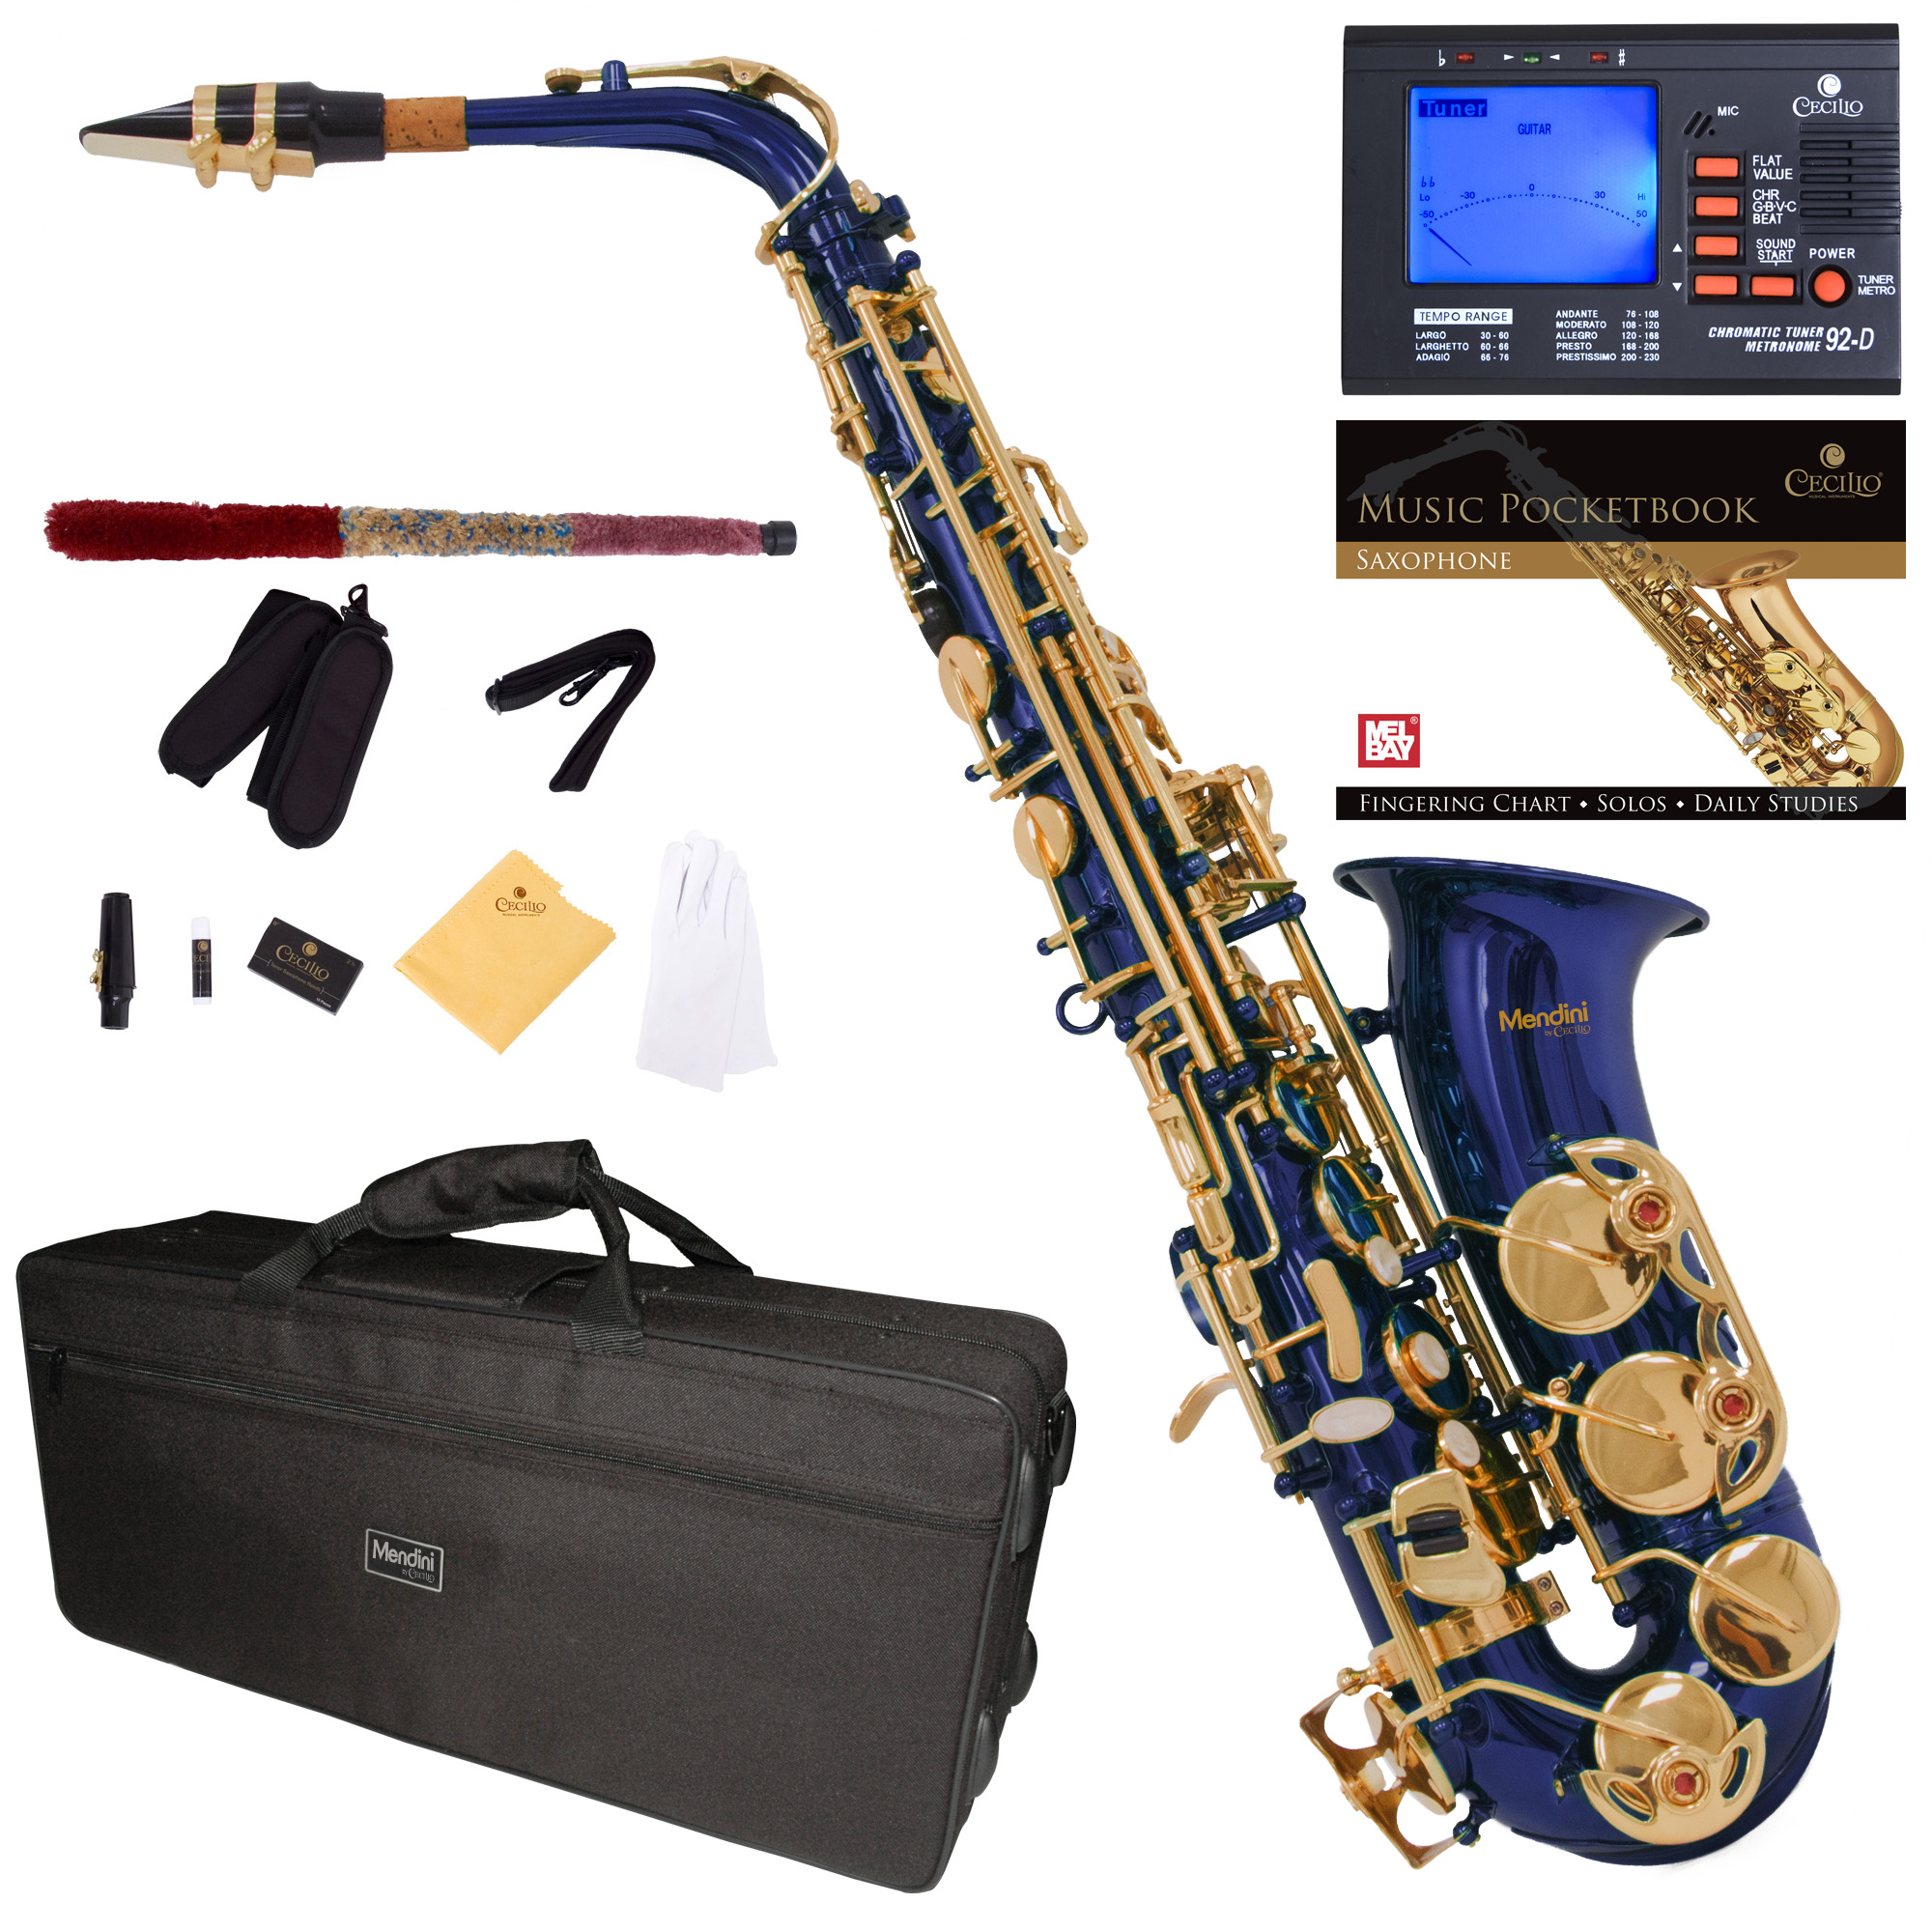 Mendini by Cecilio Eb Alto Sax w/Tuner, Case, Mouthpiece, 10 Reeds, Pocketbook and 1 Year Warranty, MAS-BL Blue Lacquer E Flat Saxophone